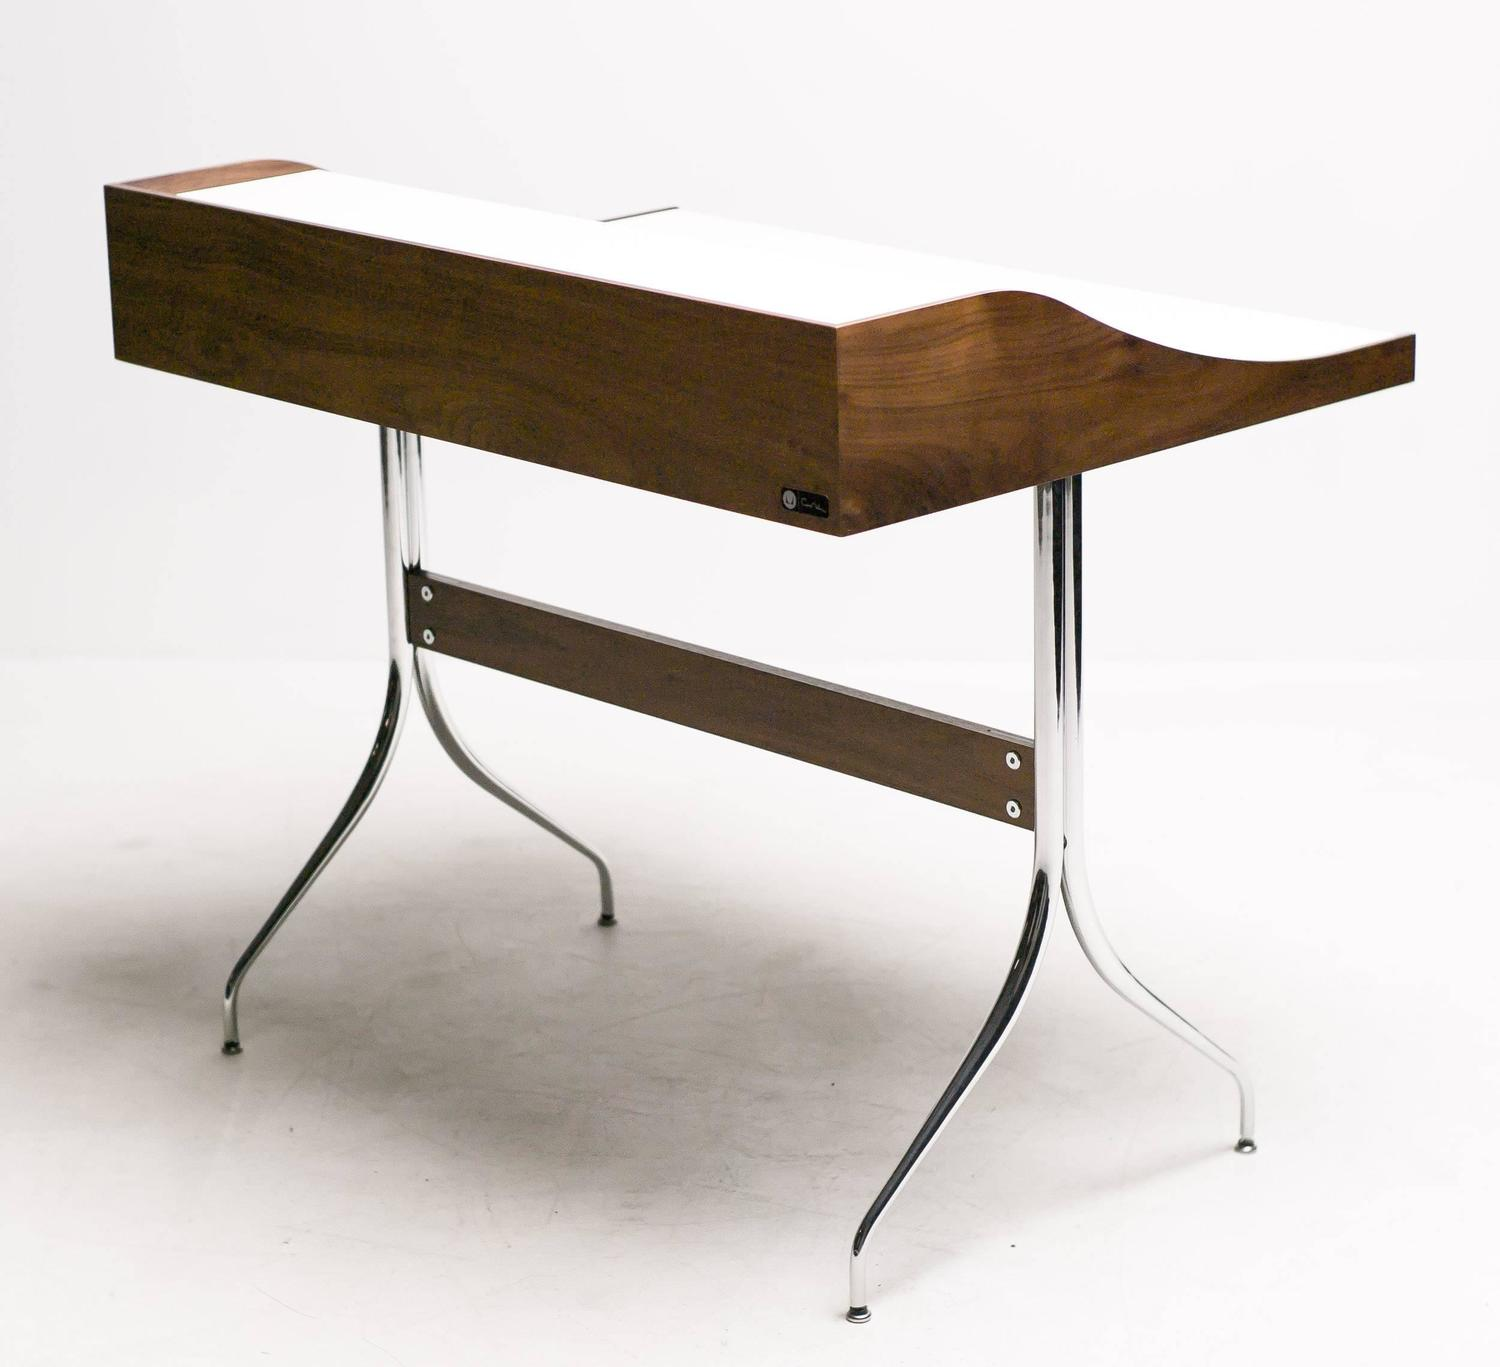 George nelson swag leg desk at 1stdibs for Nelson swag leg table